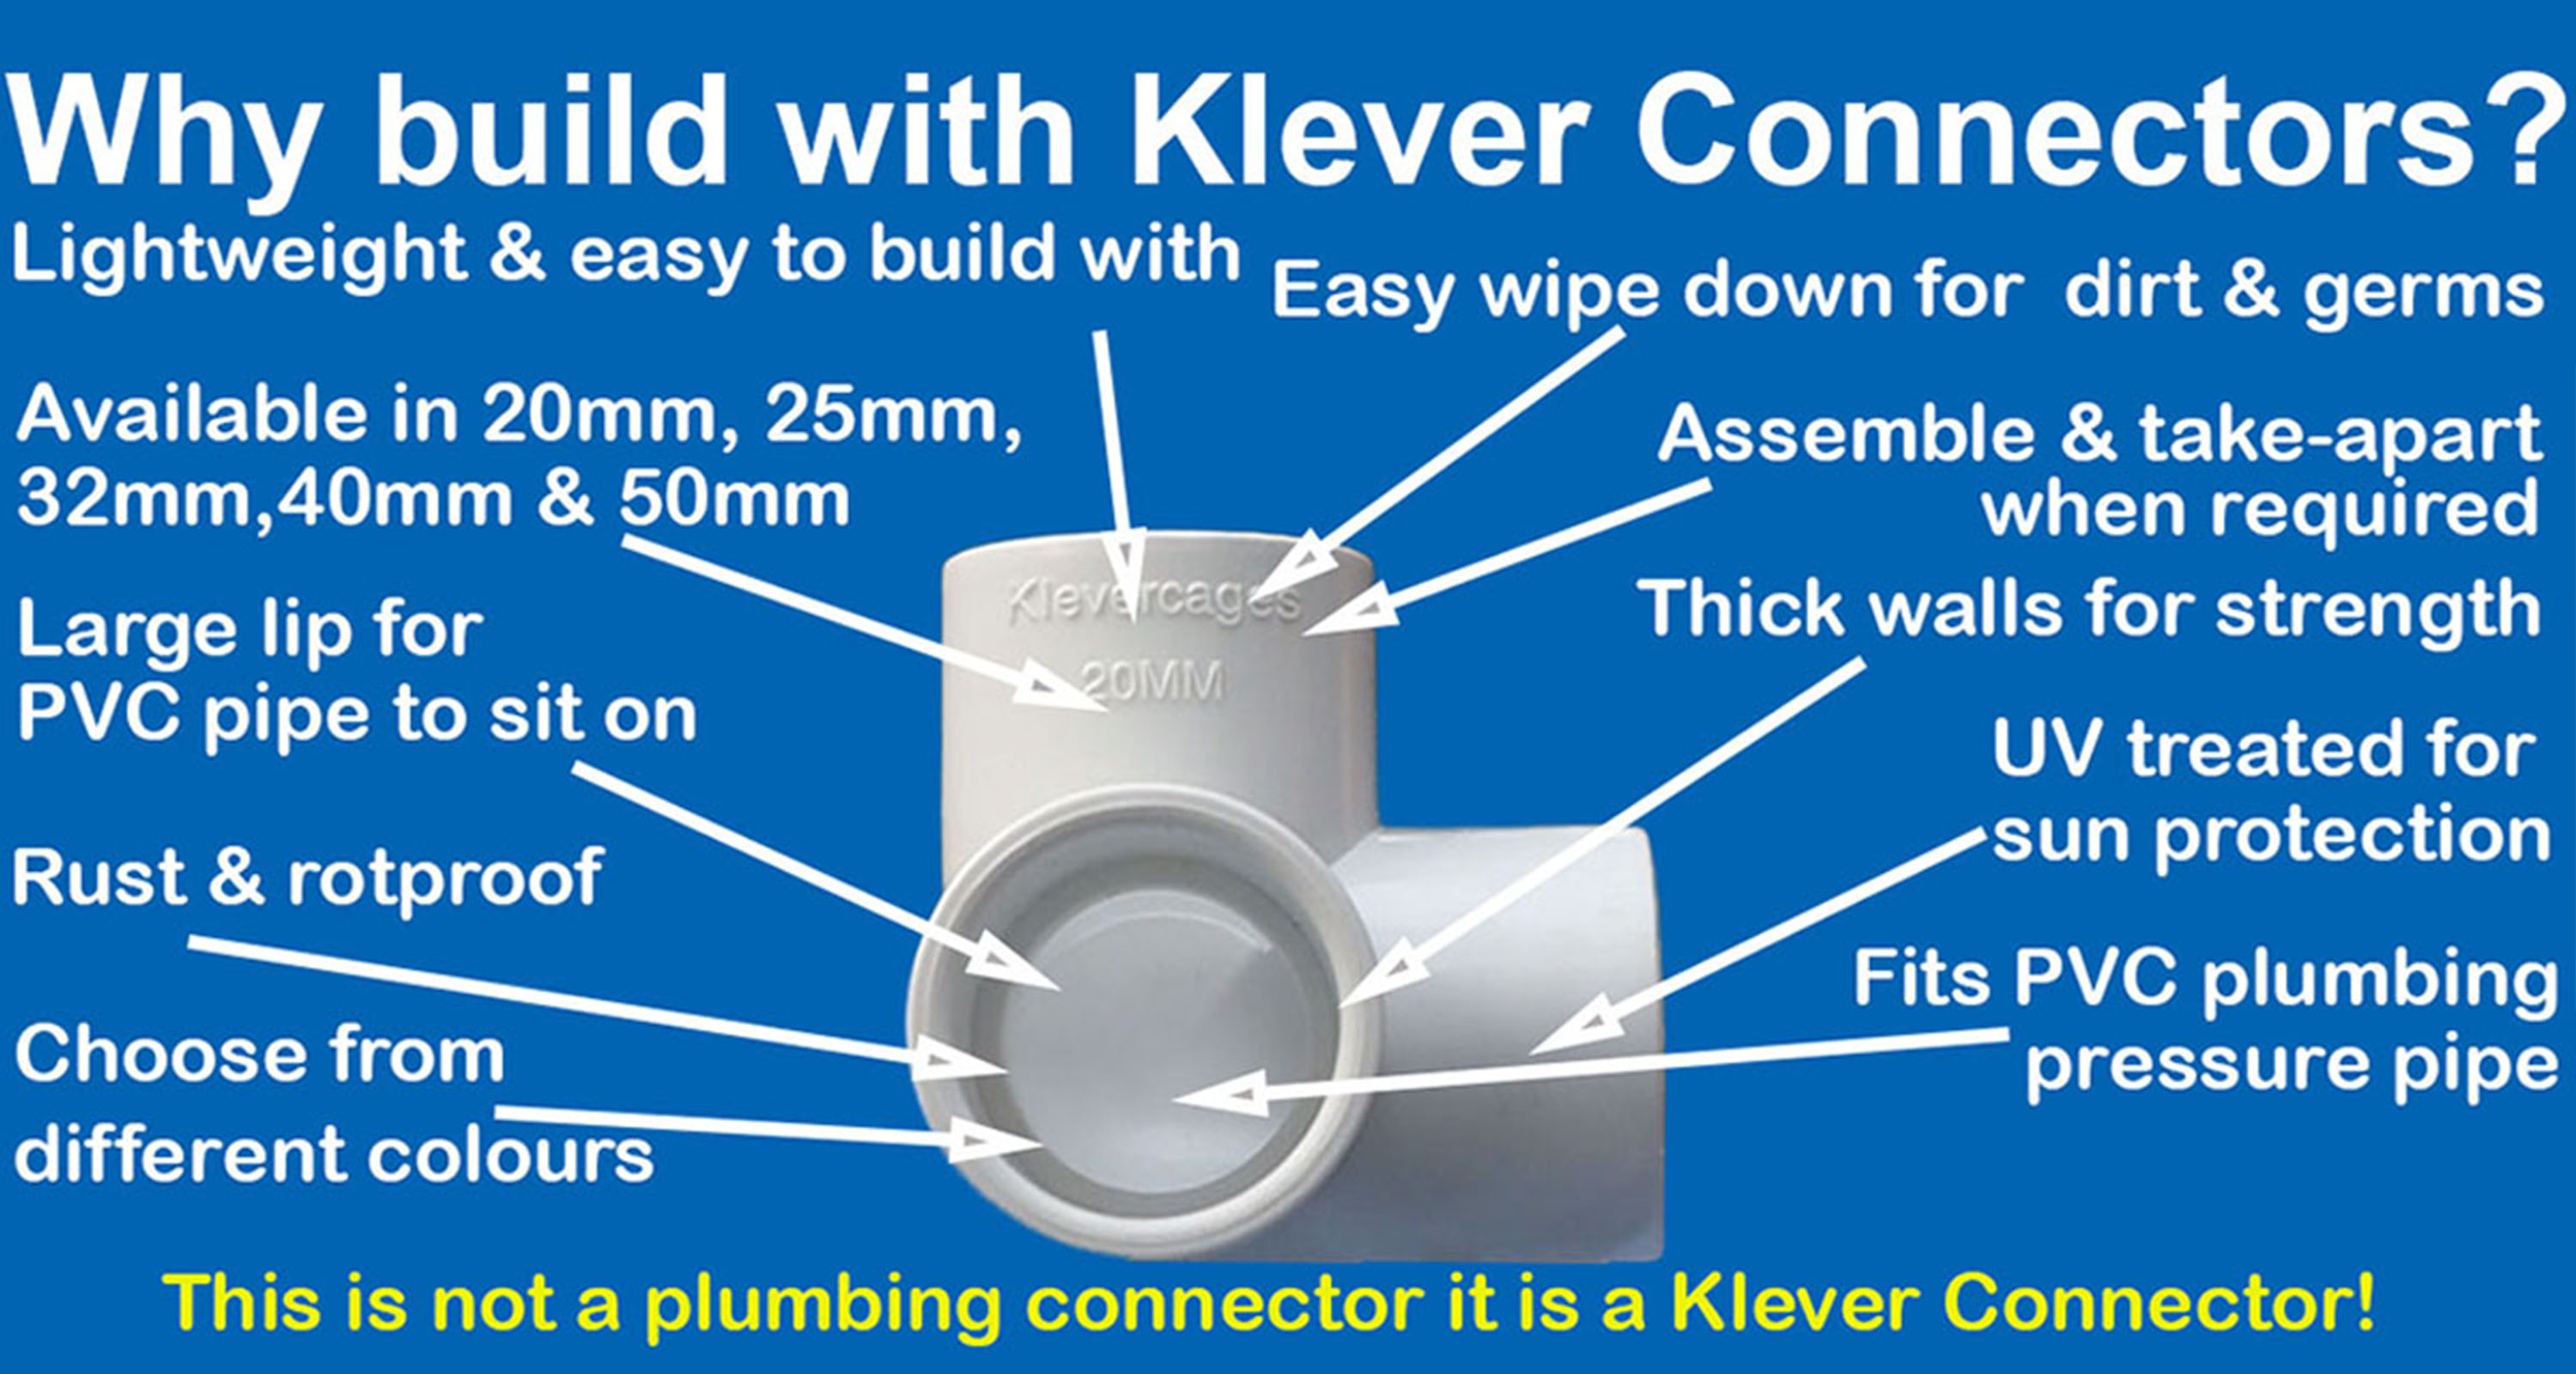 3 way 20mm connector fitting that fits PVC pipe from Klever Cages fpr building PVC projects